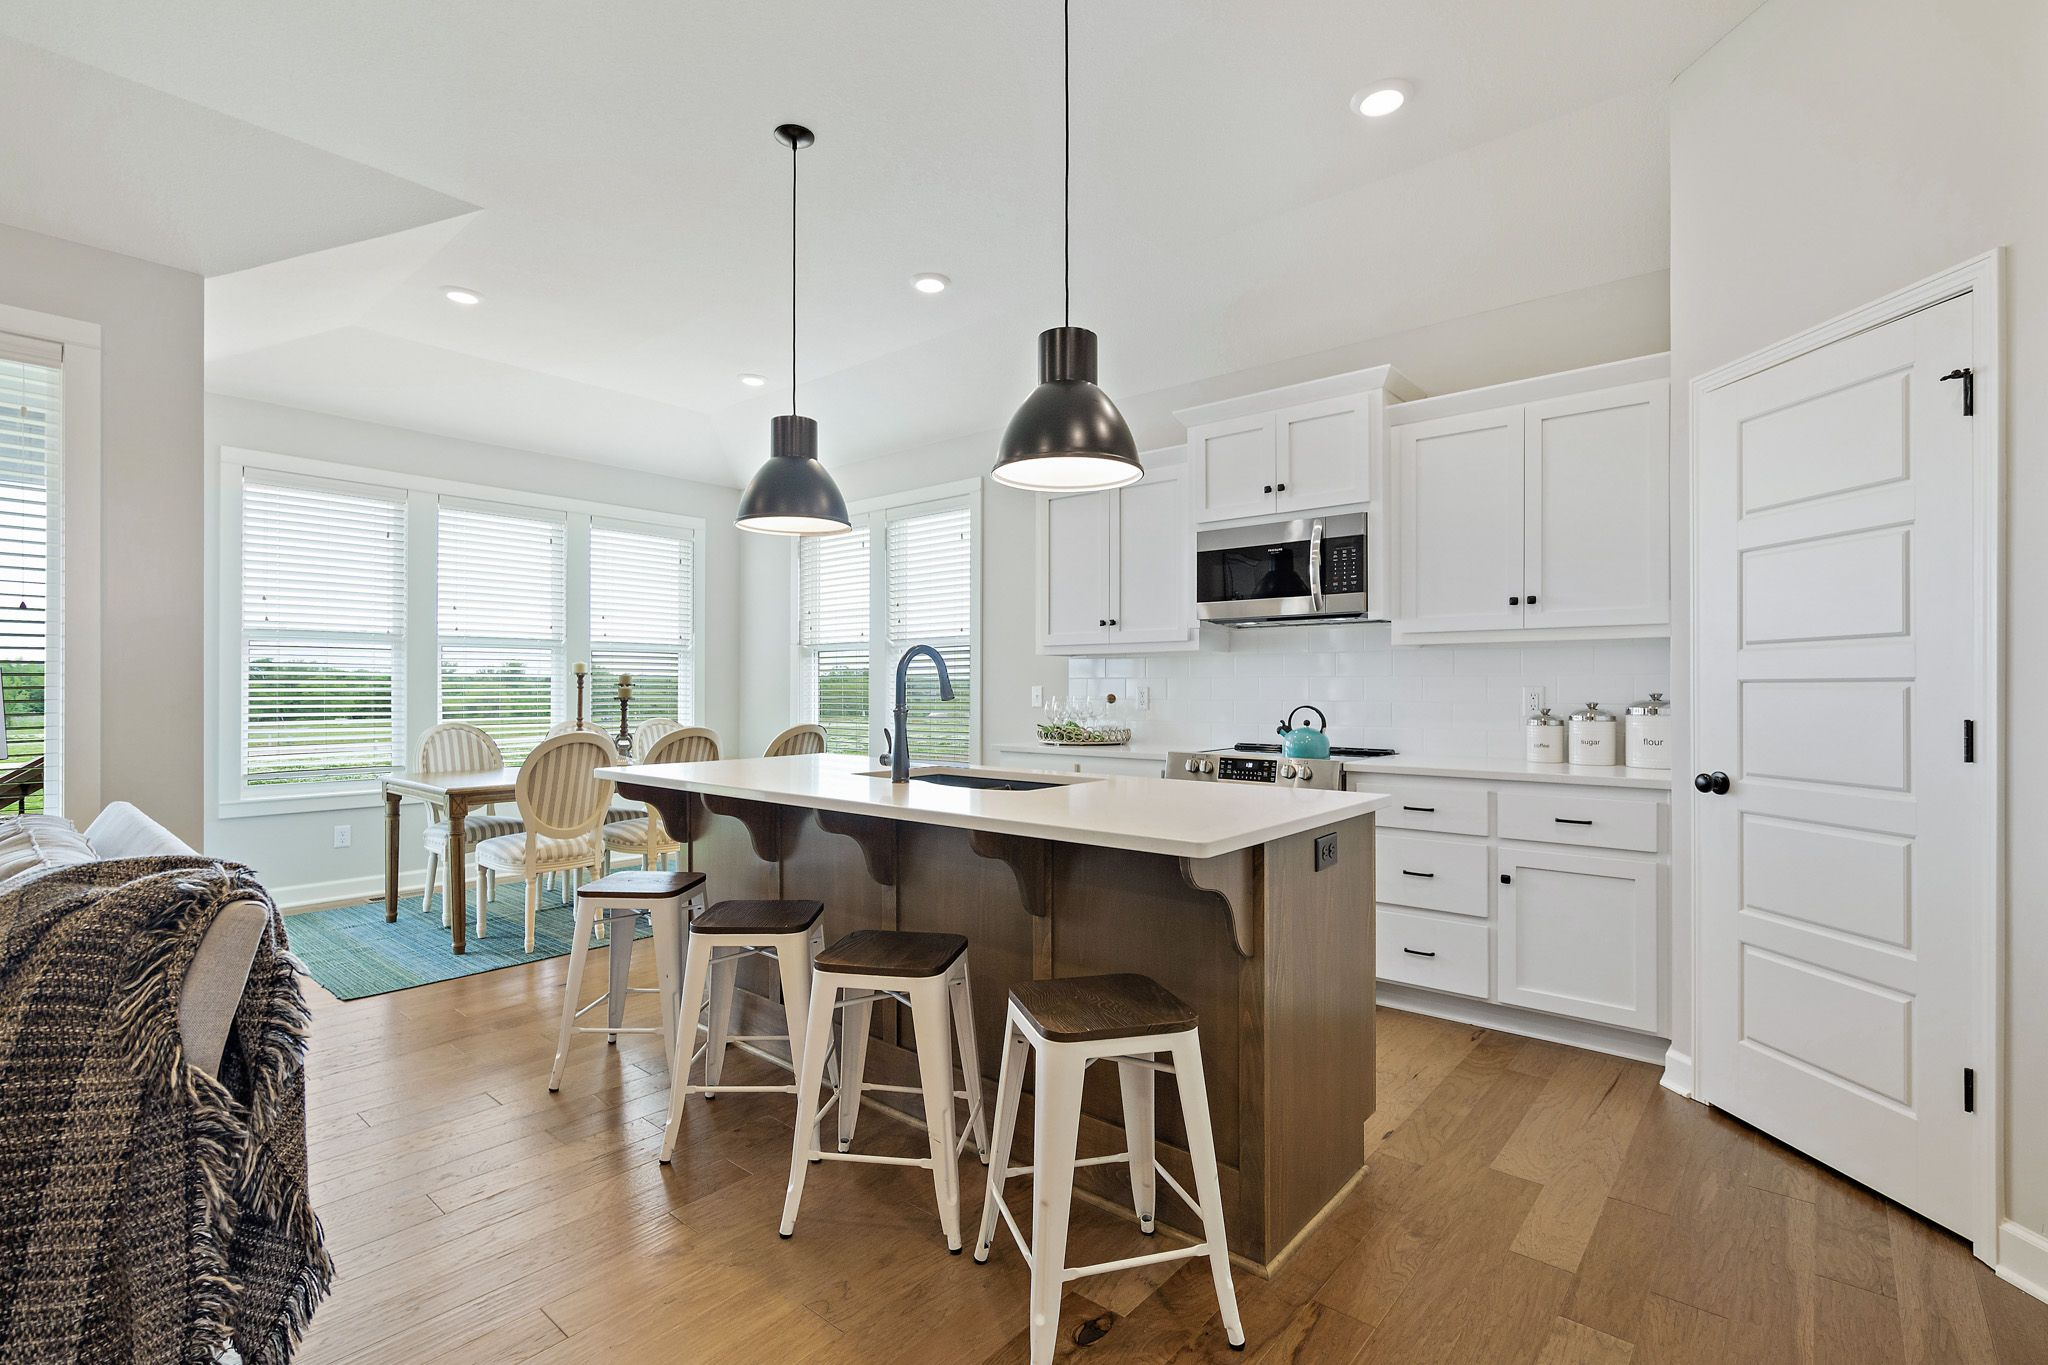 Kitchen featured in the Langston - Care Free By Summit Homes in Kansas City, MO